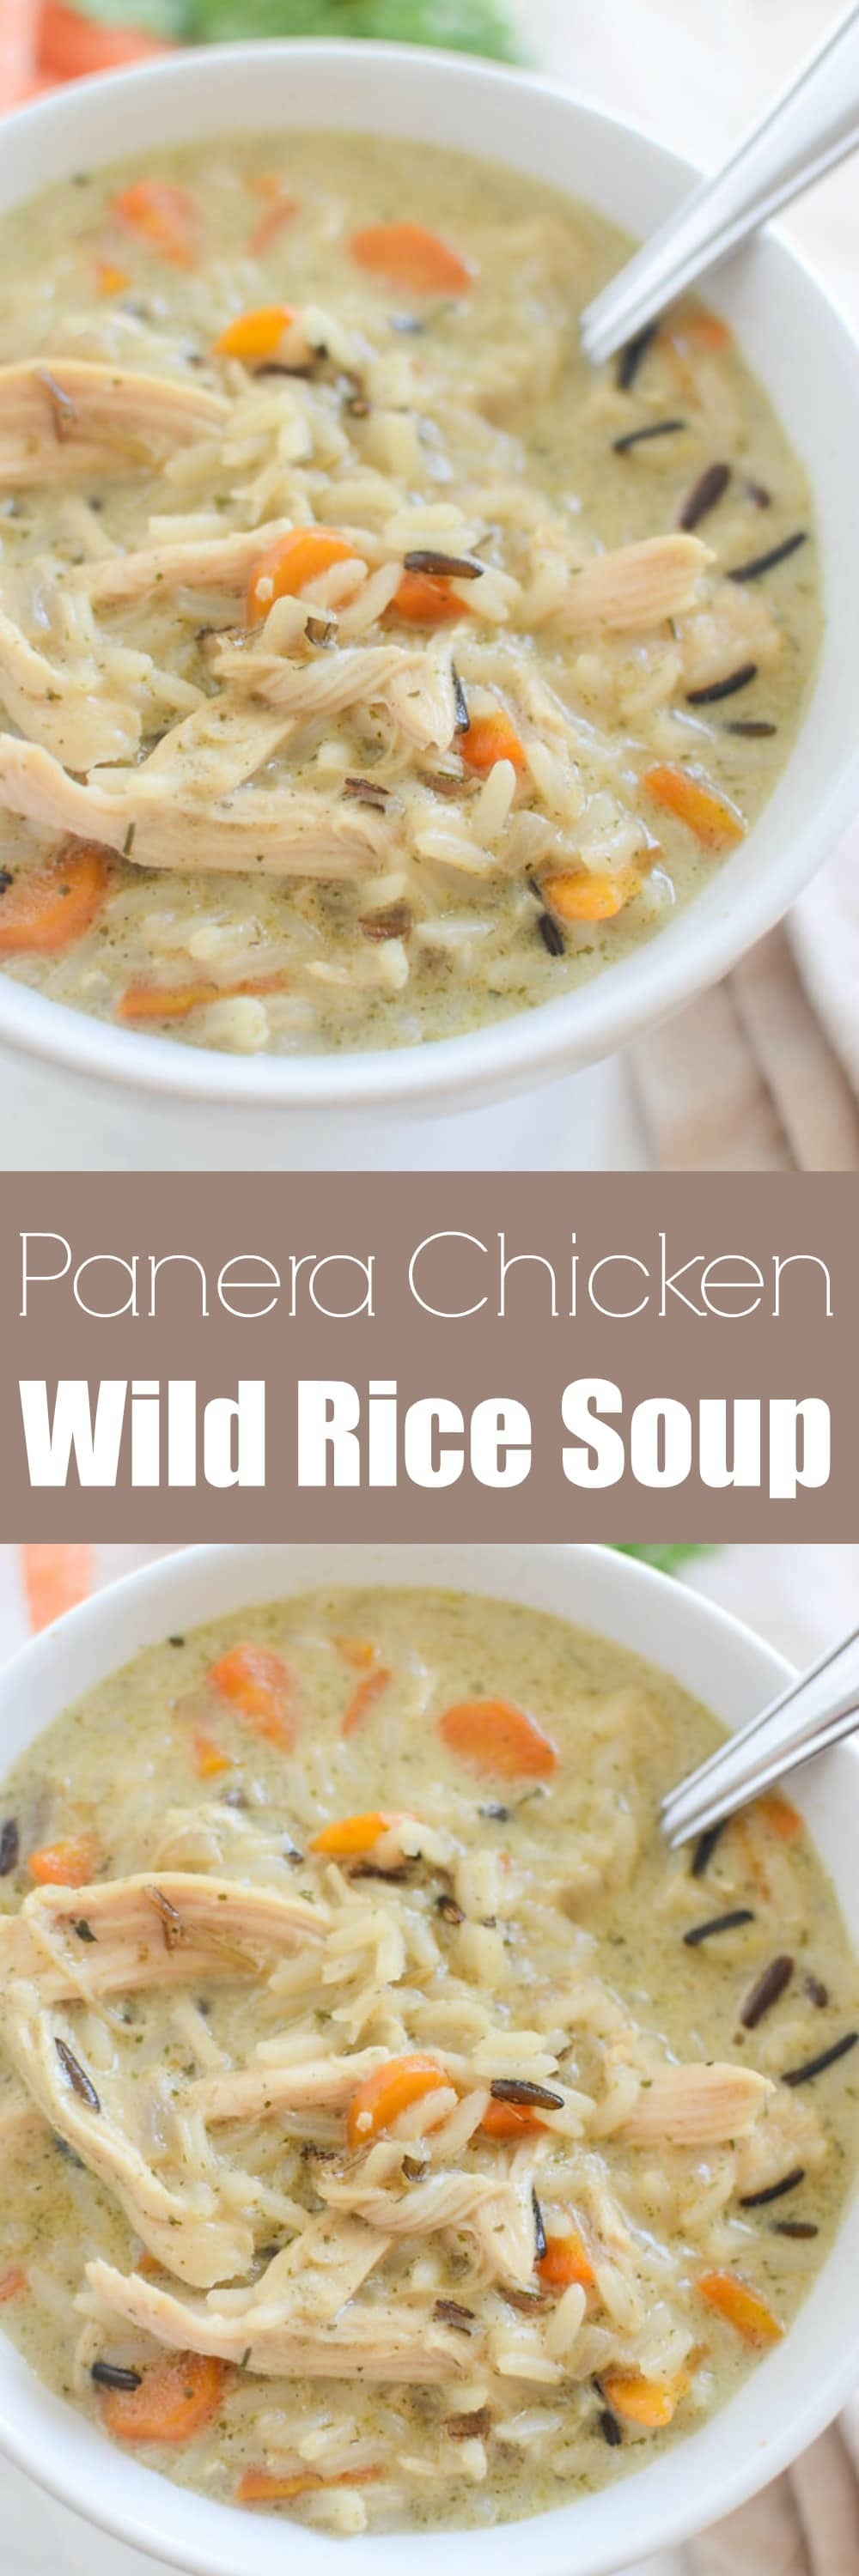 Chicken and Wild Rice Soup - Panera copycat recipe! Creamy soup with wild rice, chicken, and veggies. The whole family will love this recipe and it's so easy!